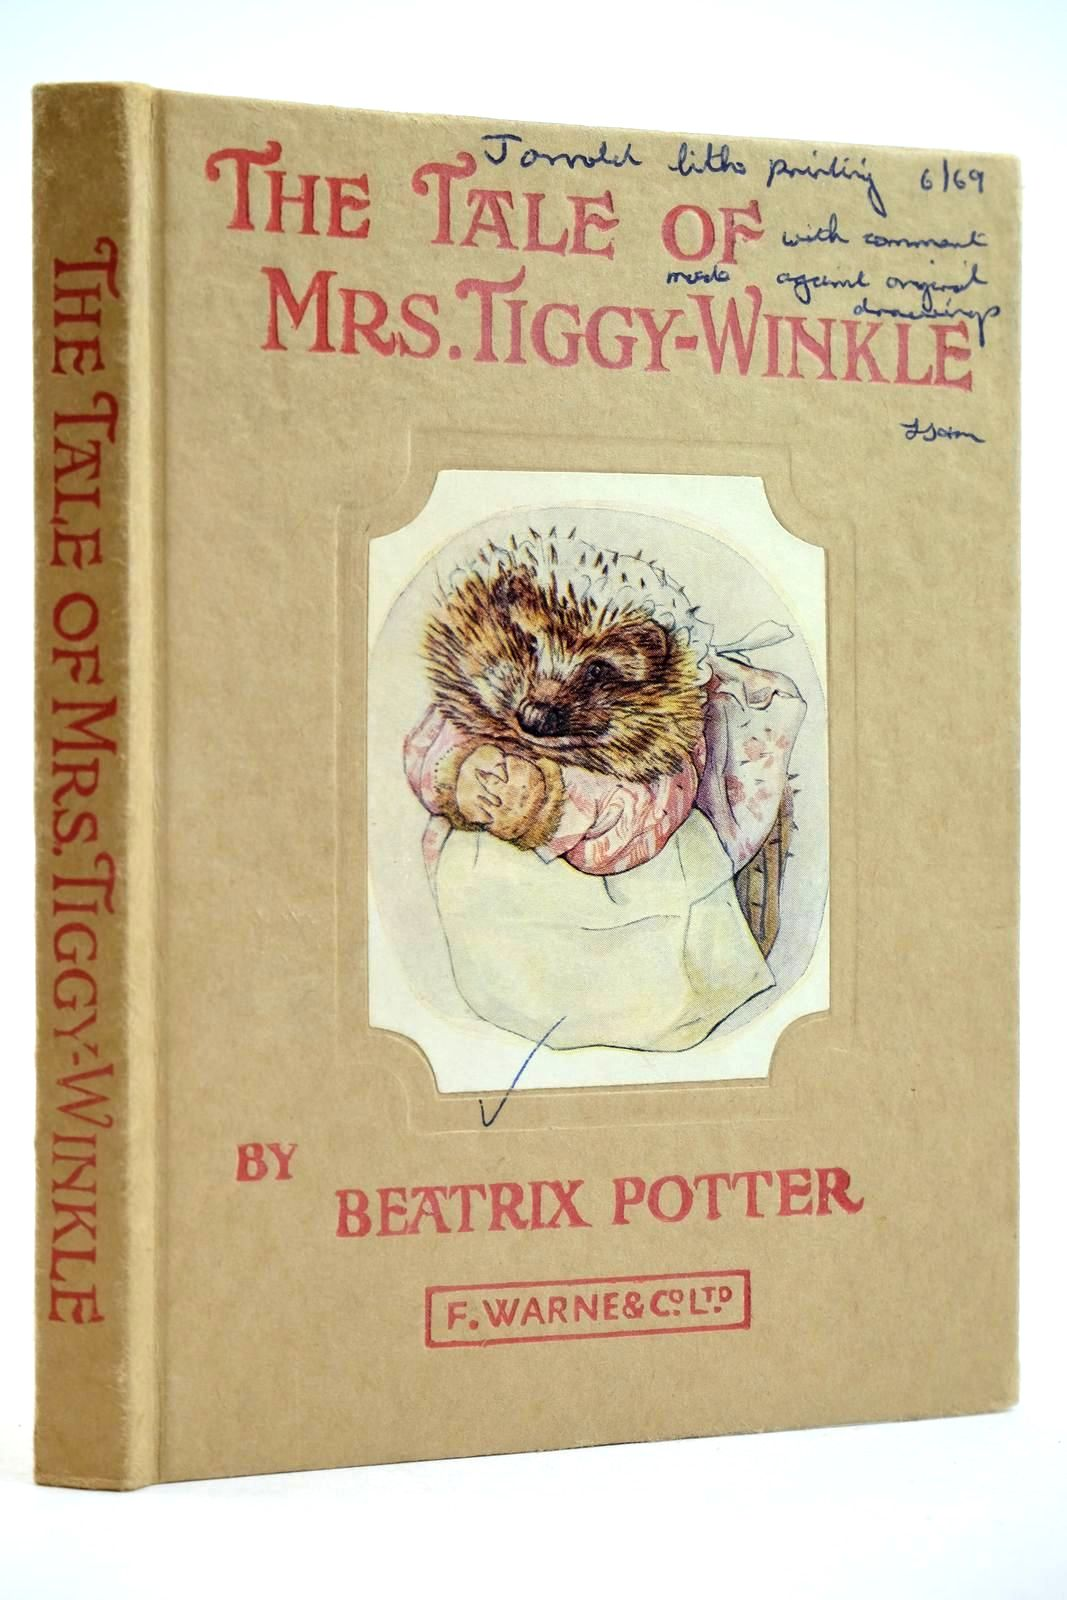 Photo of THE TALE OF MRS. TIGGY-WINKLE written by Potter, Beatrix illustrated by Potter, Beatrix published by Frederick Warne & Co Ltd. (STOCK CODE: 2132061)  for sale by Stella & Rose's Books